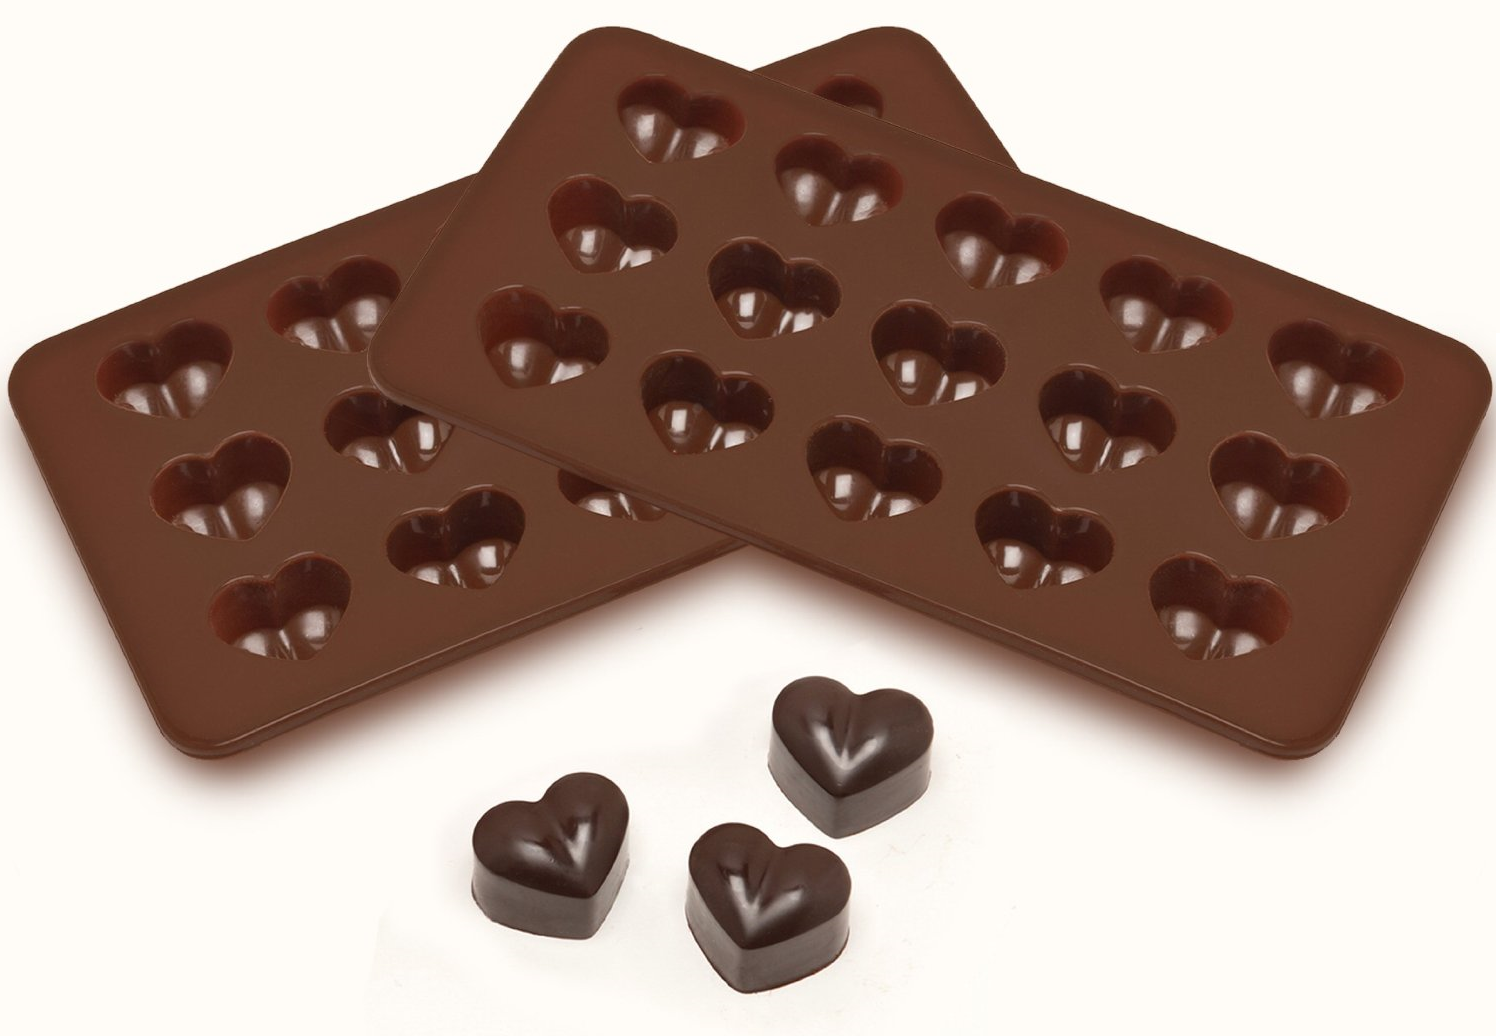 2 Heart Shaped Silicone Molds for Chocolate, Jelly & Candy Only ...